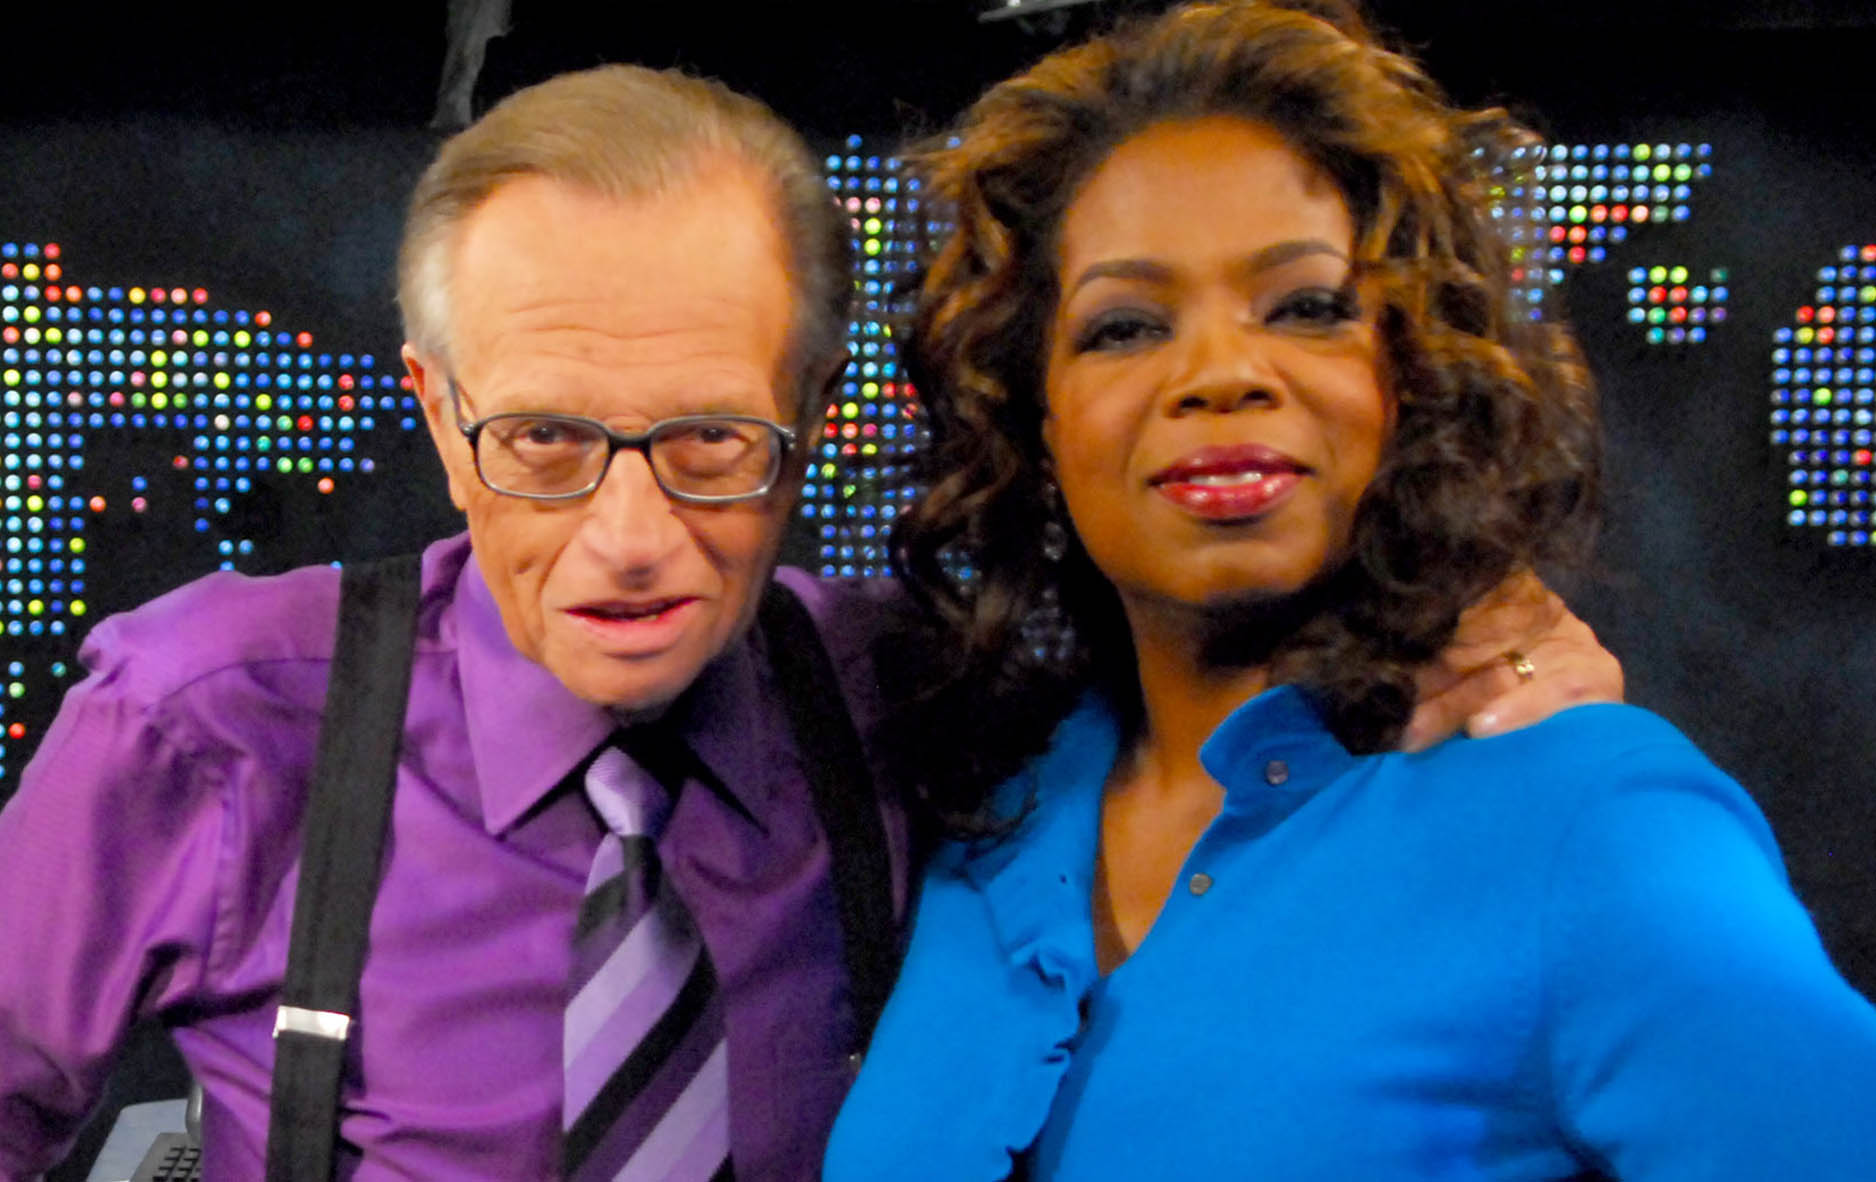 PHOTOS: Larry King with celebrities over the years - fox